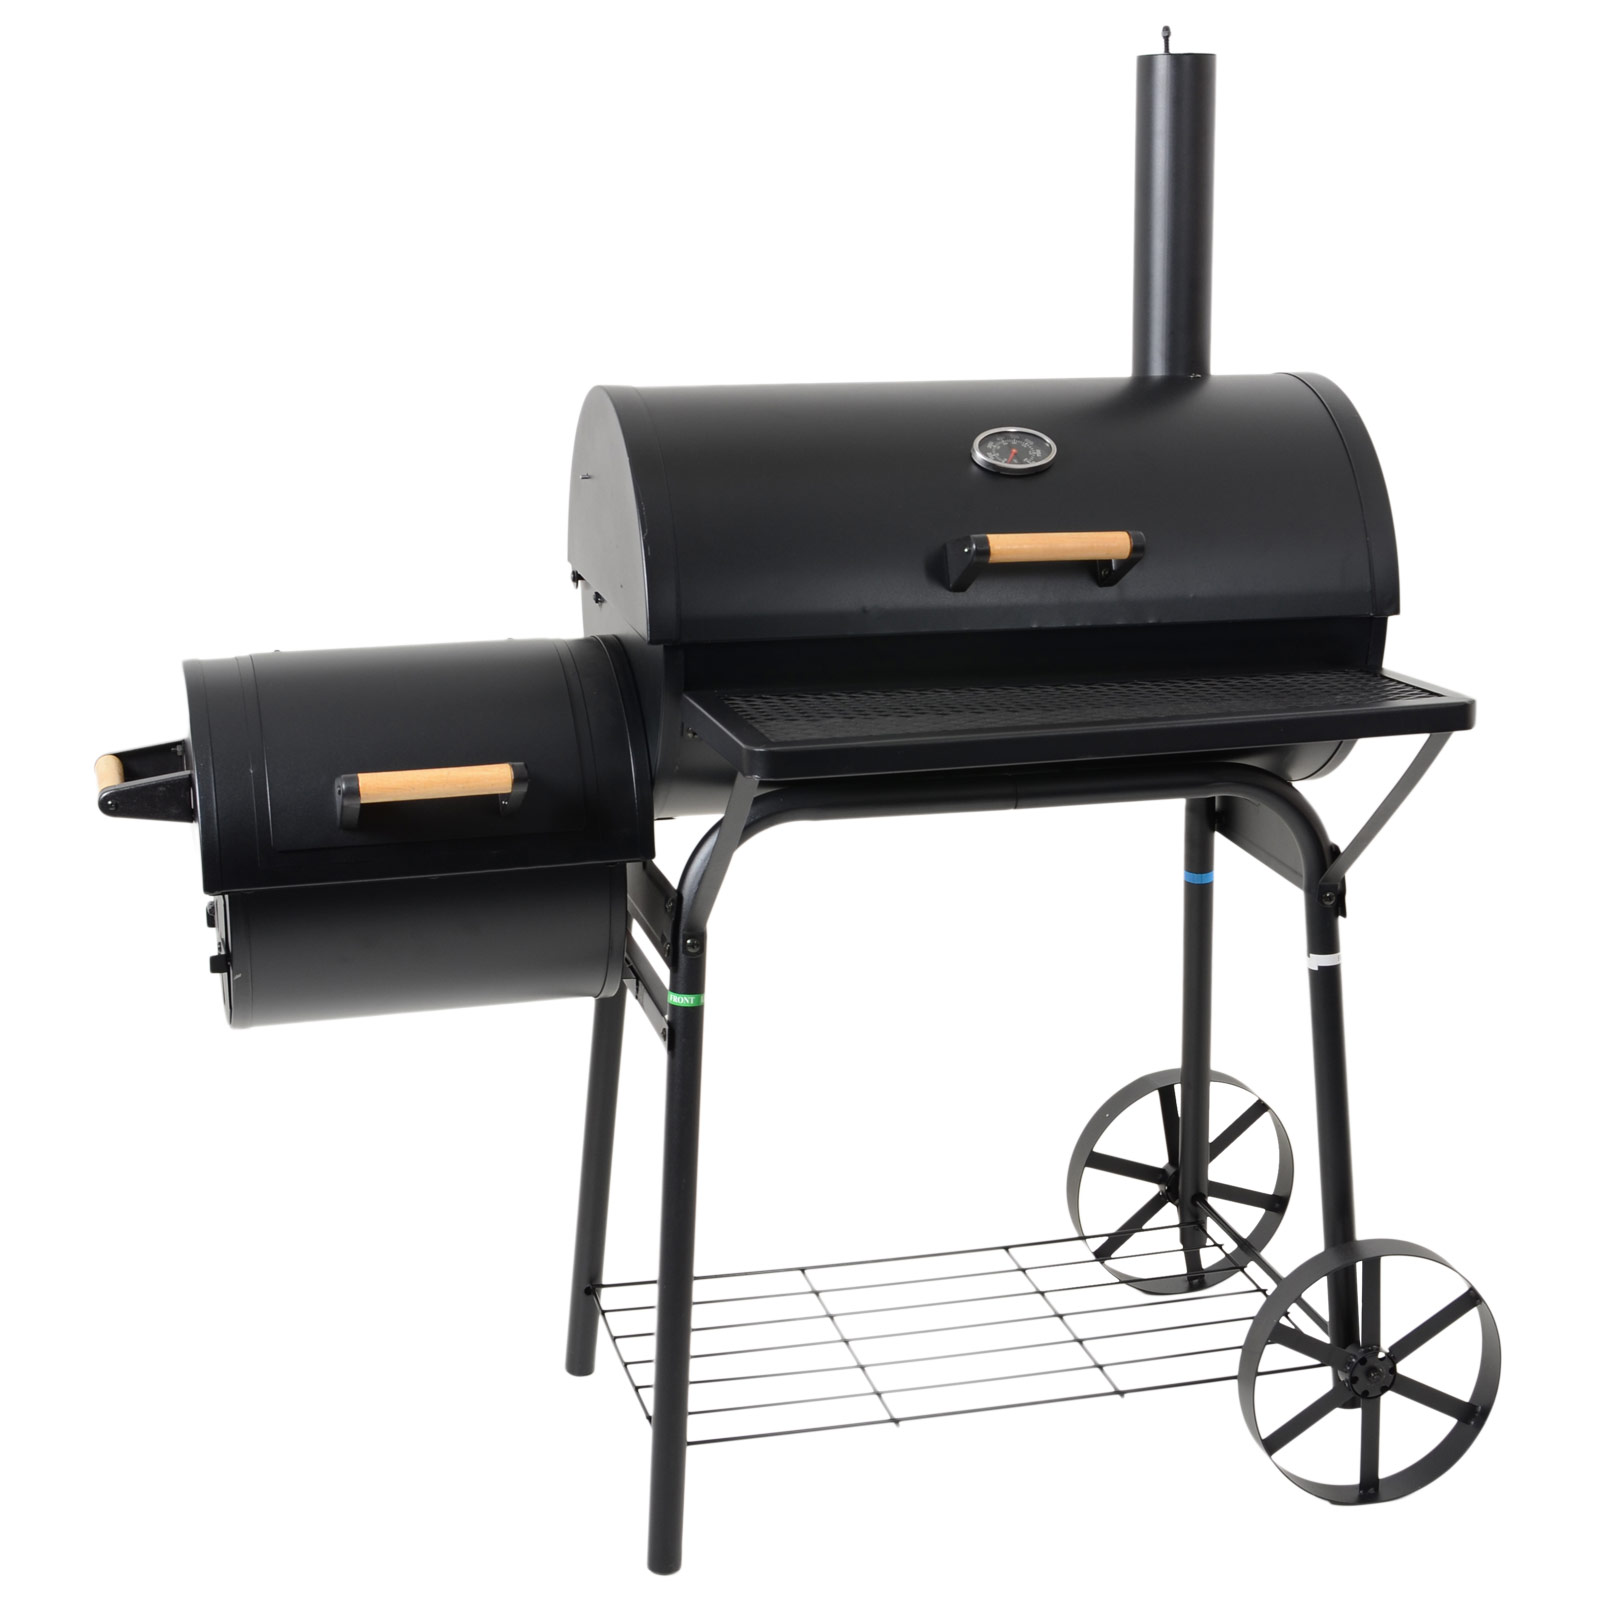 bbq large barrel style steel smoker charcoal barbeque bbq outdoor grill new ebay. Black Bedroom Furniture Sets. Home Design Ideas